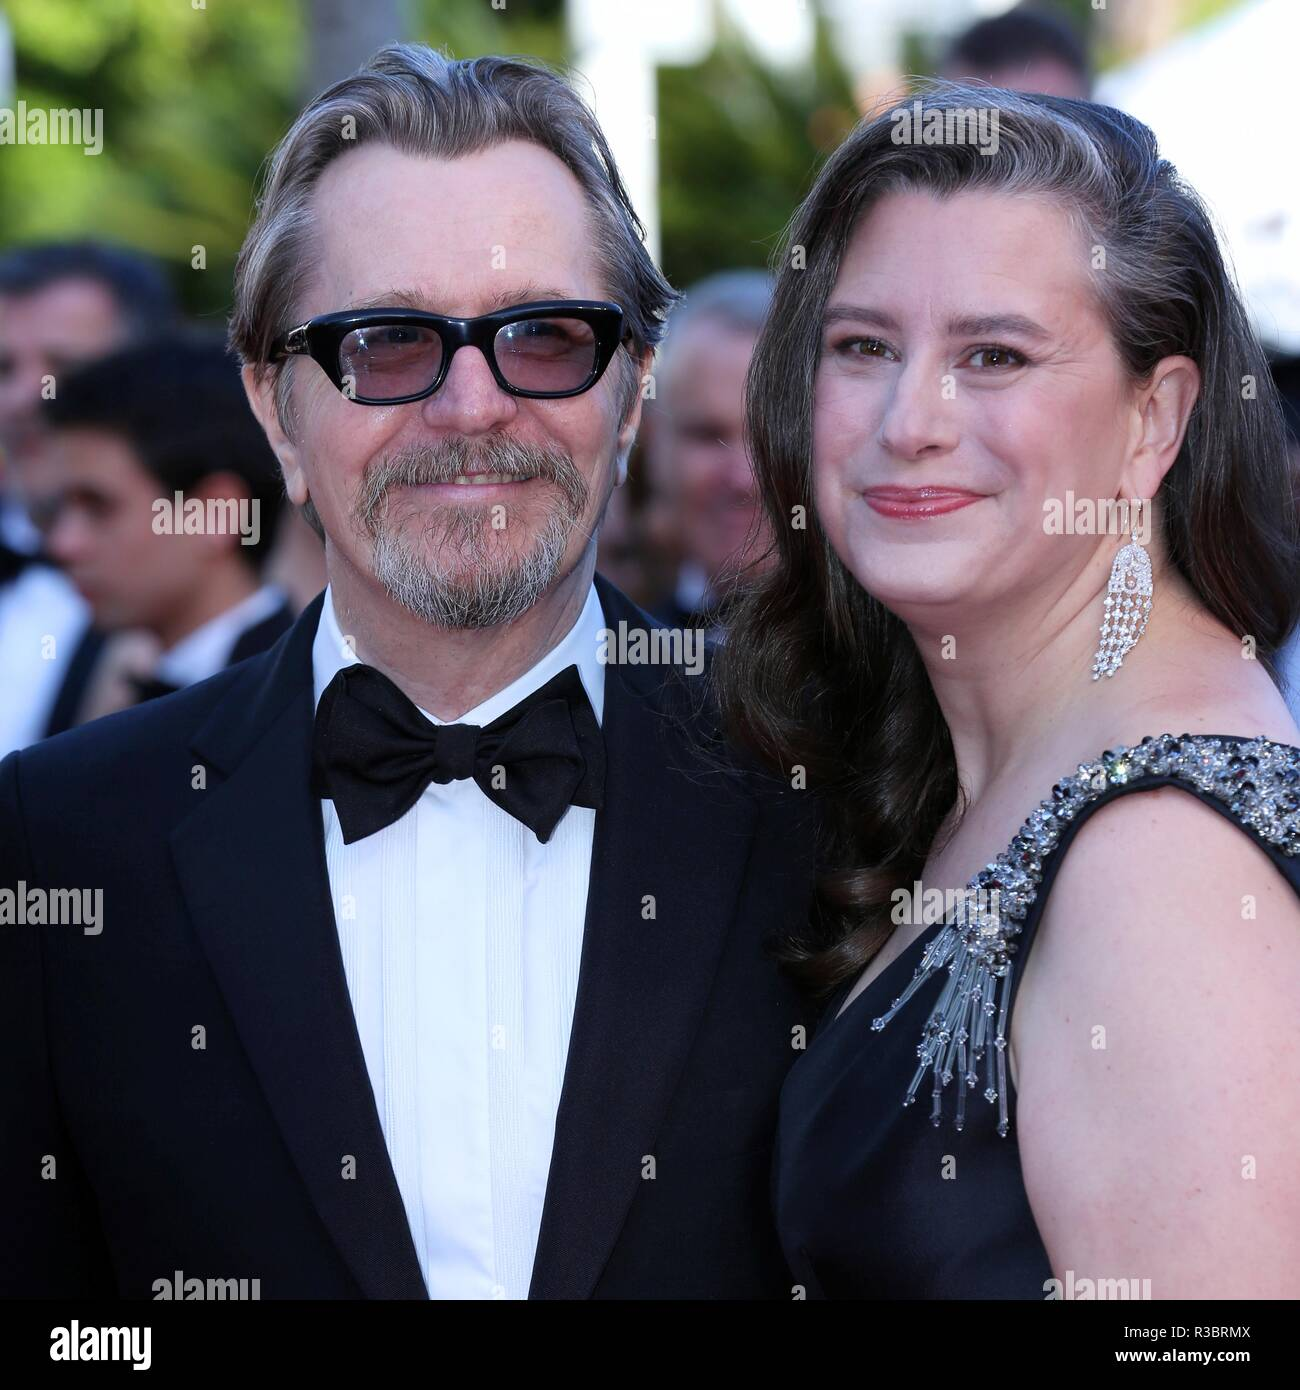 CANNES, FRANCE – MAY 17, 2018: Gary Oldman and Gisele Schmidt attend the screening of 'Capharnaum' at the Festival de Cannes (Ph: Mickael Chavet) - Stock Image